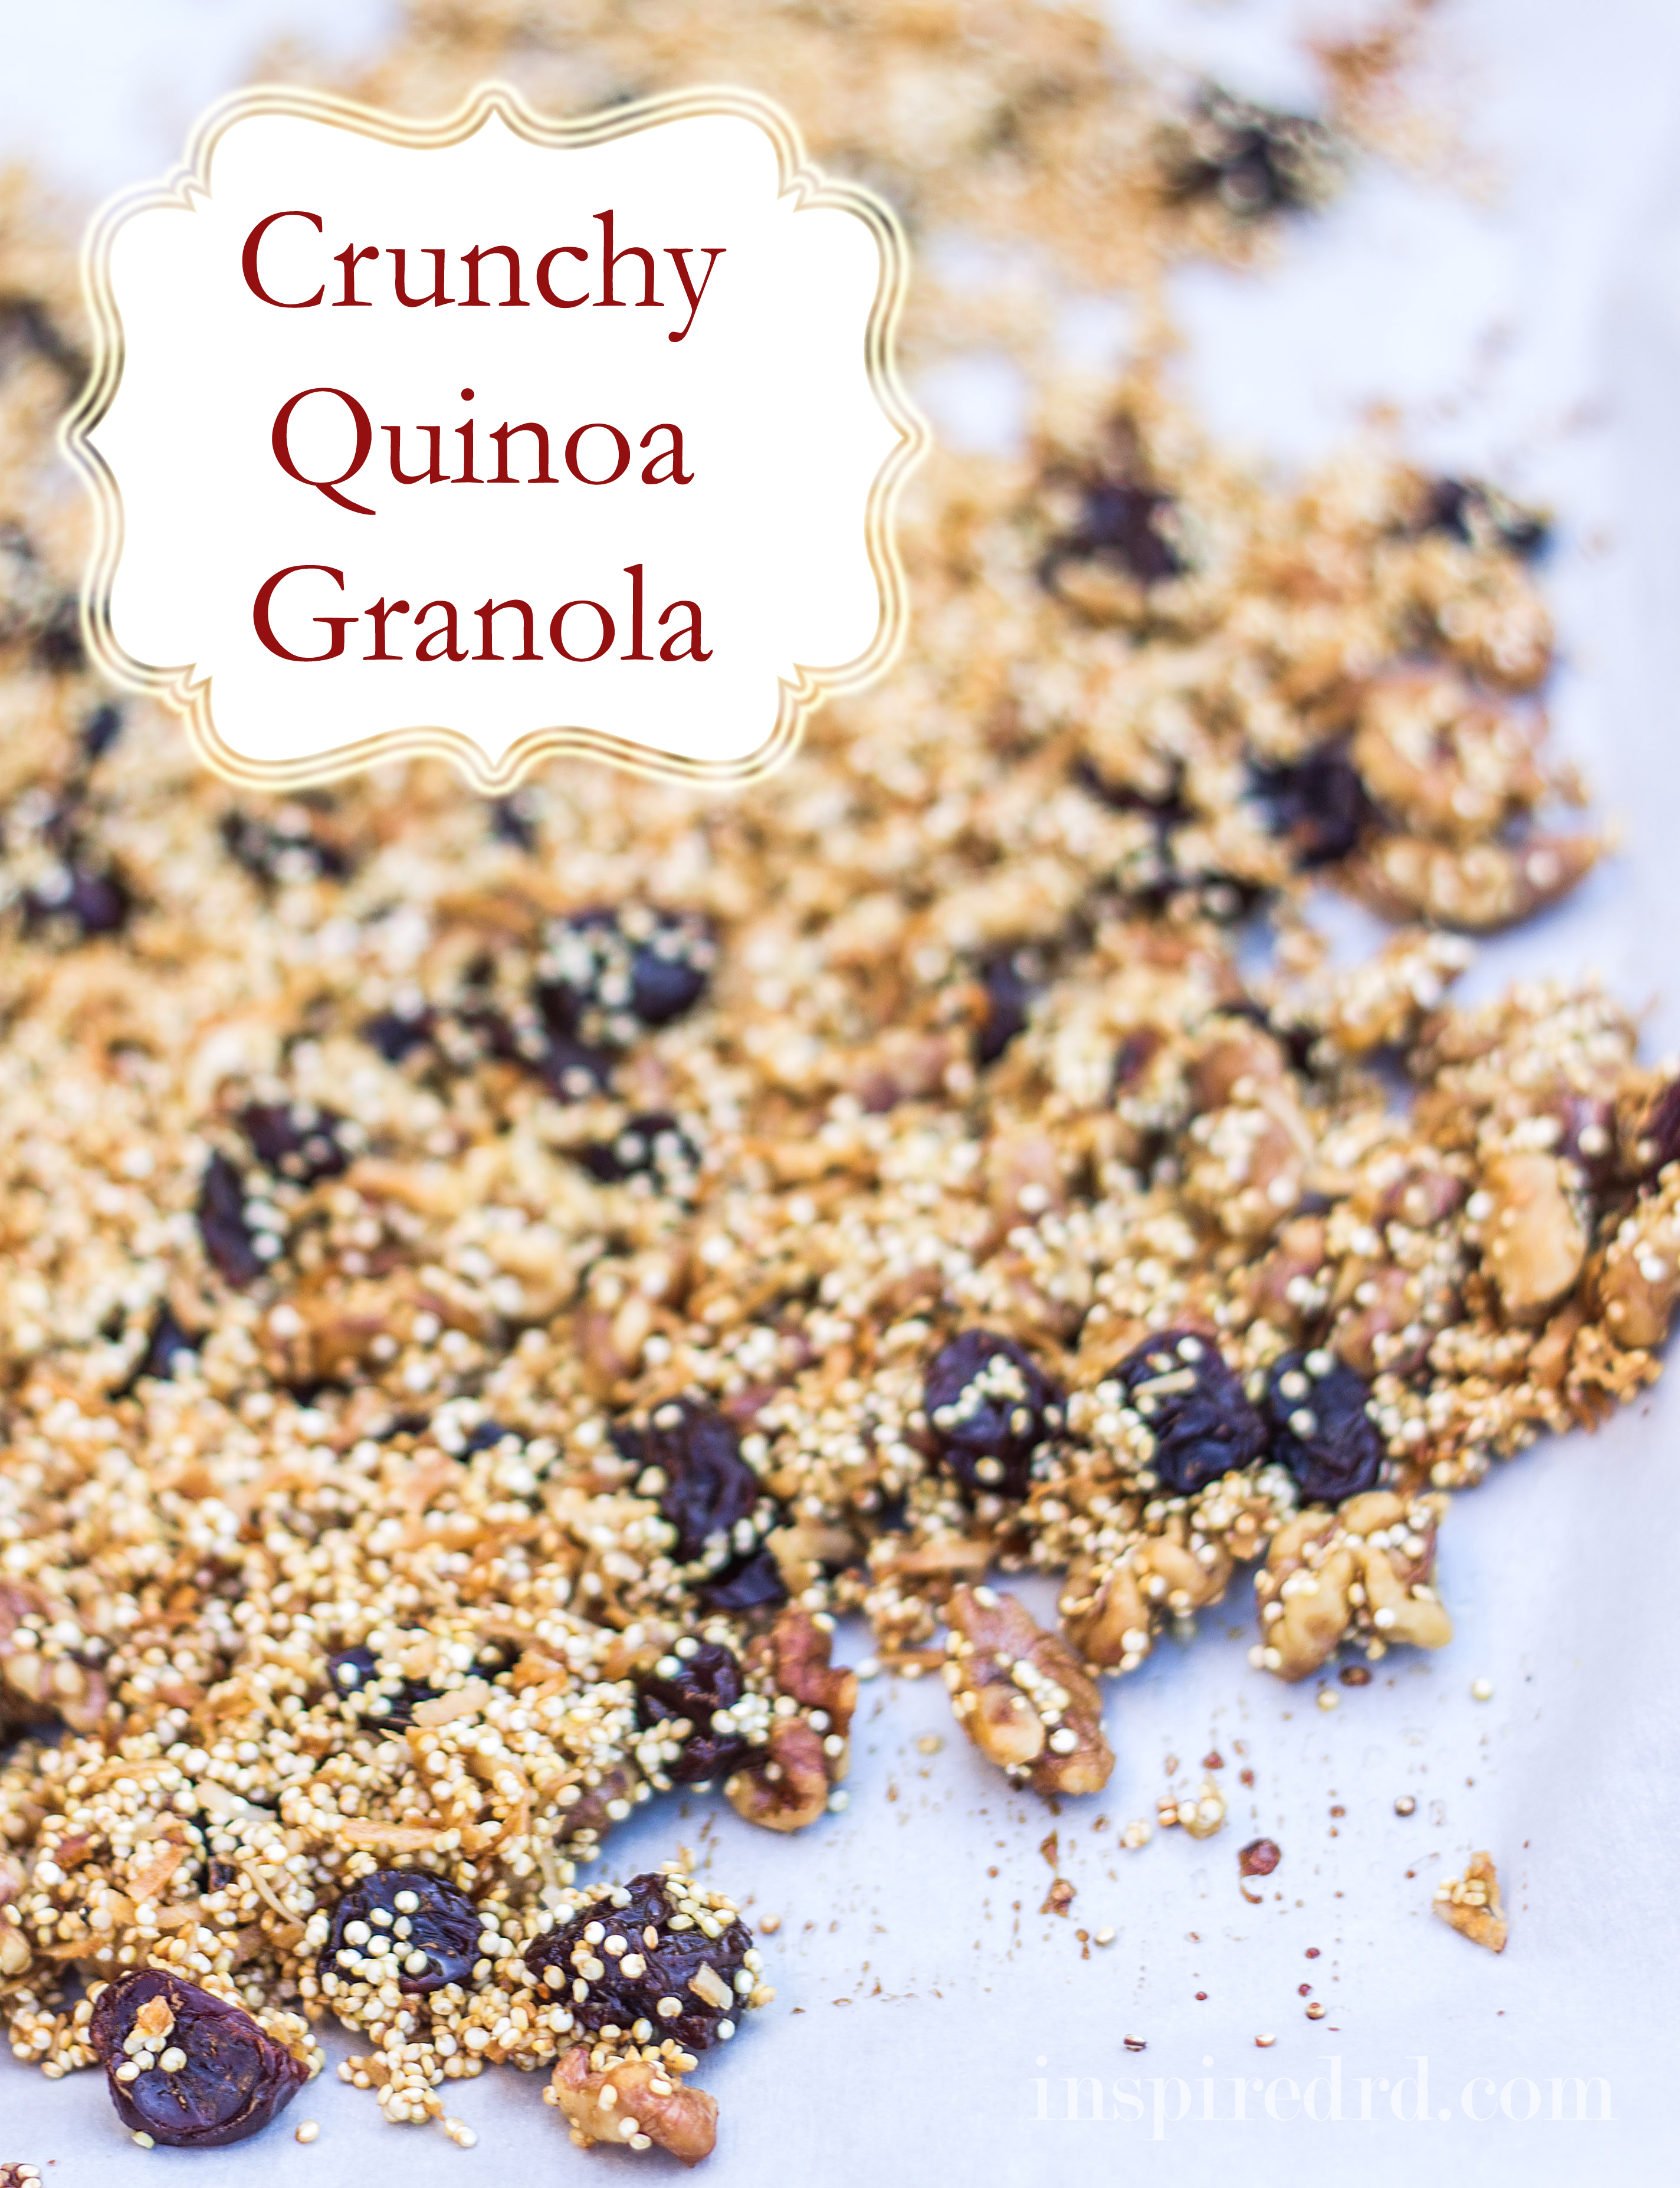 ... before. That is what inspired this recipe for Crunchy Quinoa Granola